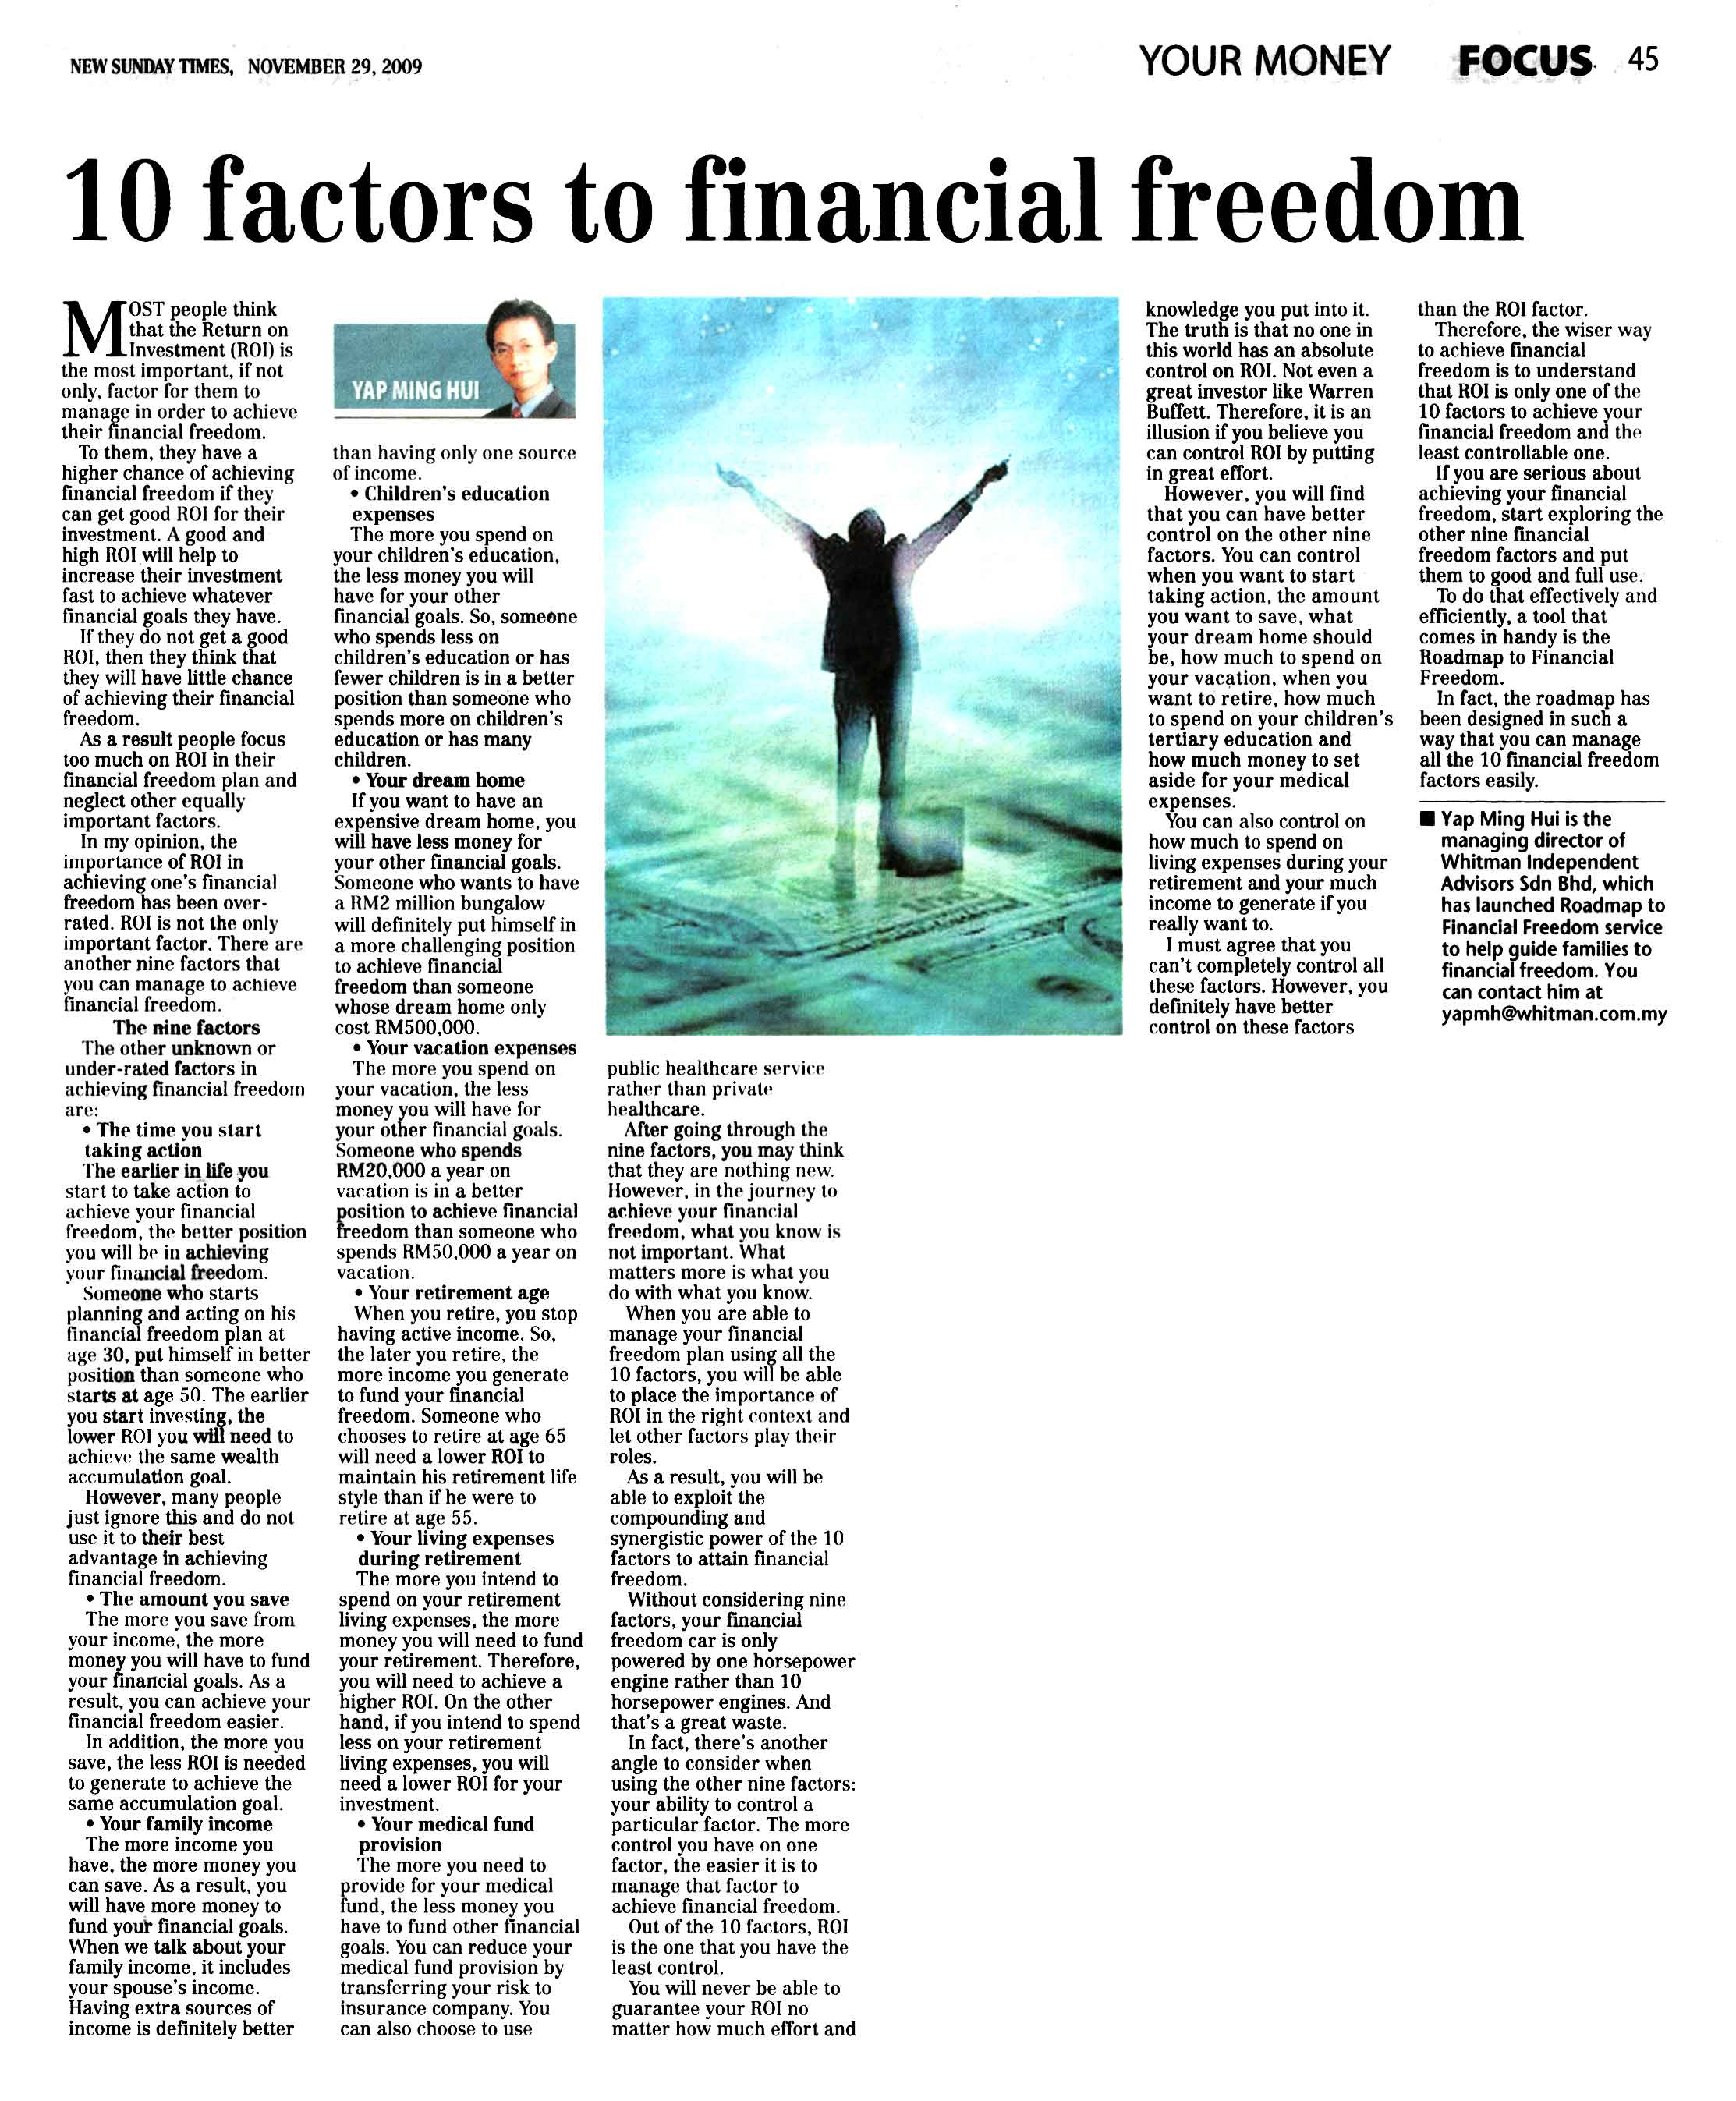 10 Factors to Financial Freedom (New Sunday Times) - 29 Nov 2009